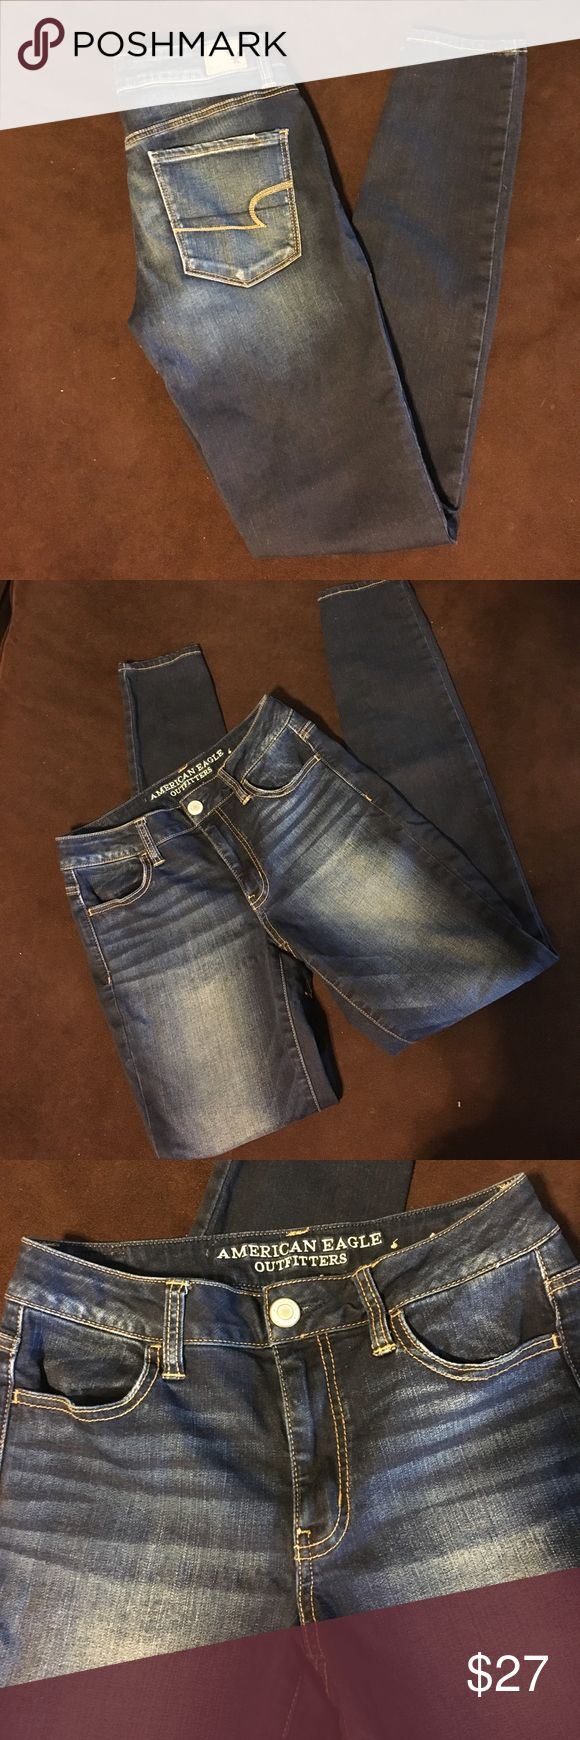 American Eagle Hi-Rise Jegging, SZ 6 long NWOT American Eagle Hi-Rise Jegging with stretch, Size 6 Long. Never worn, in excellent condition! American Eagle Outfitters Jeans Skinny